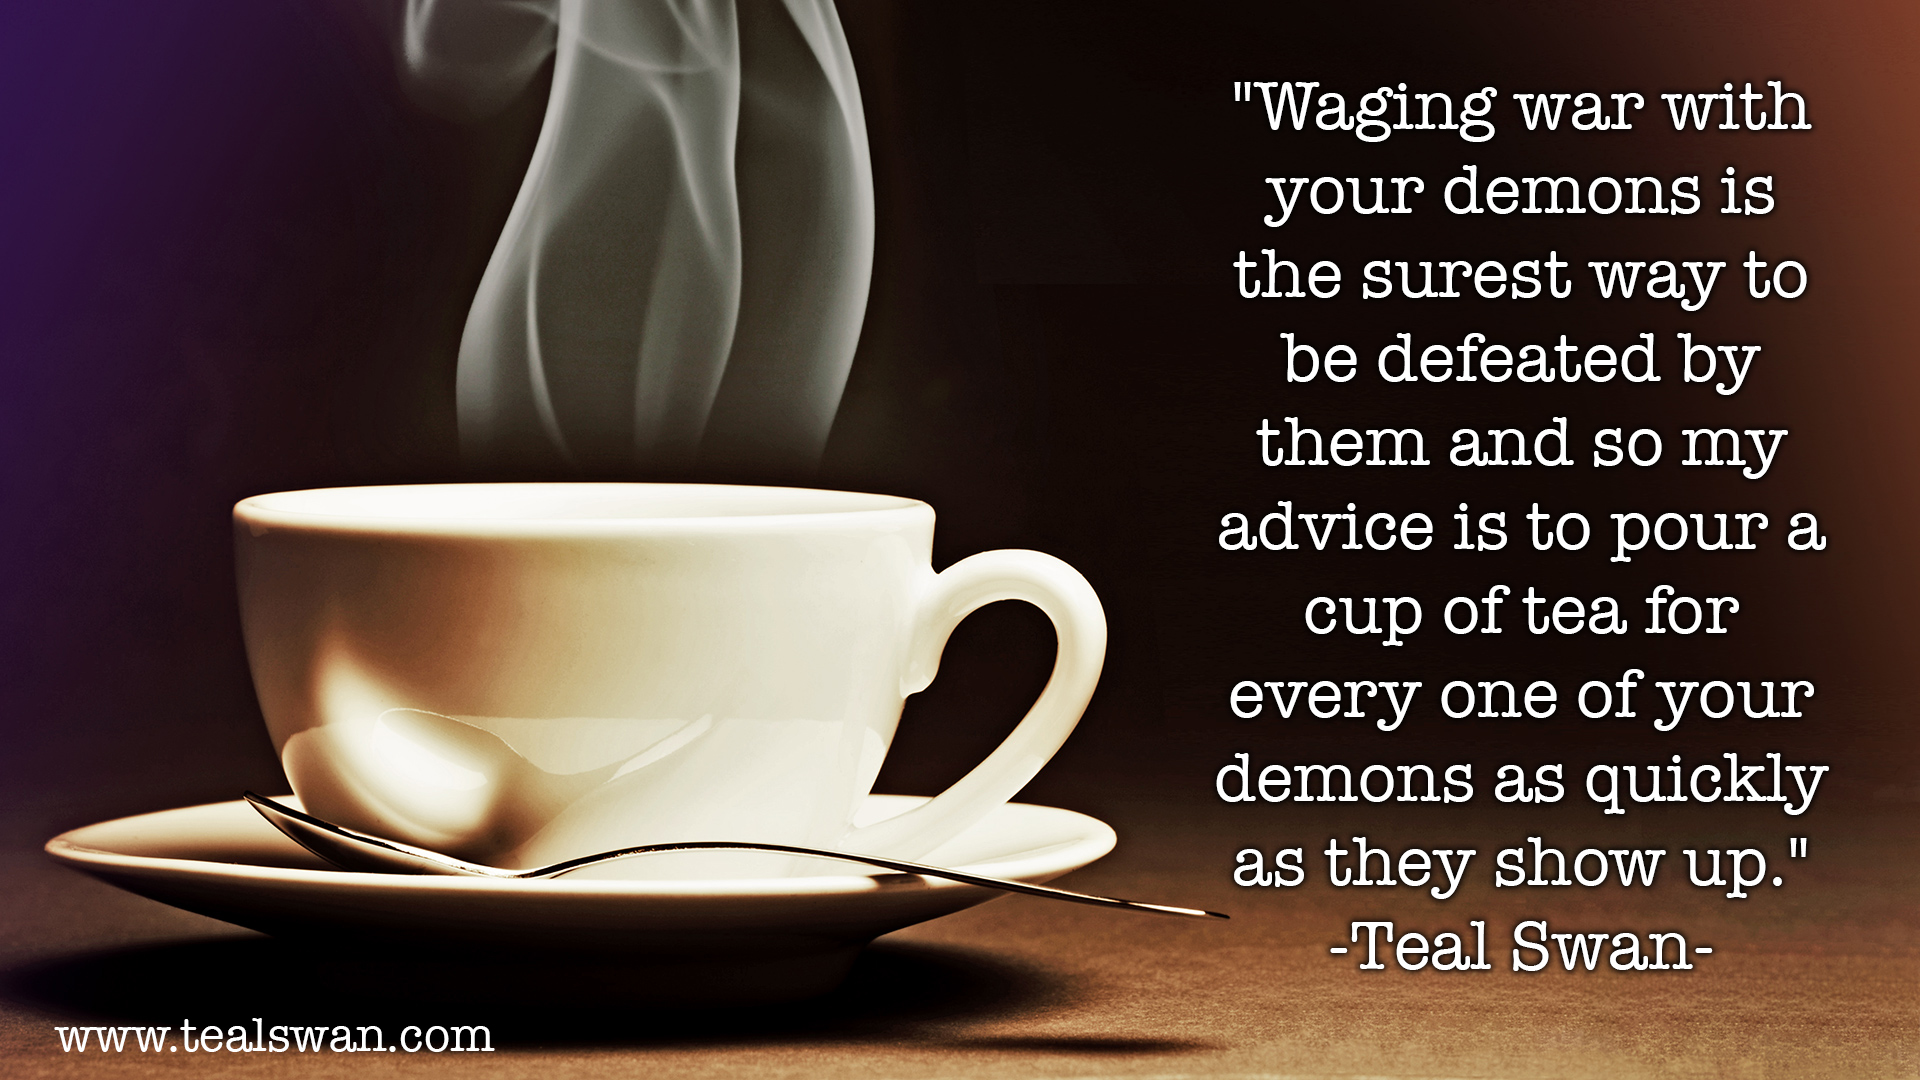 Quotes About Tea And Friendship Friendship Quotes About Tea Tea Friendship Quotes Quotesgram.